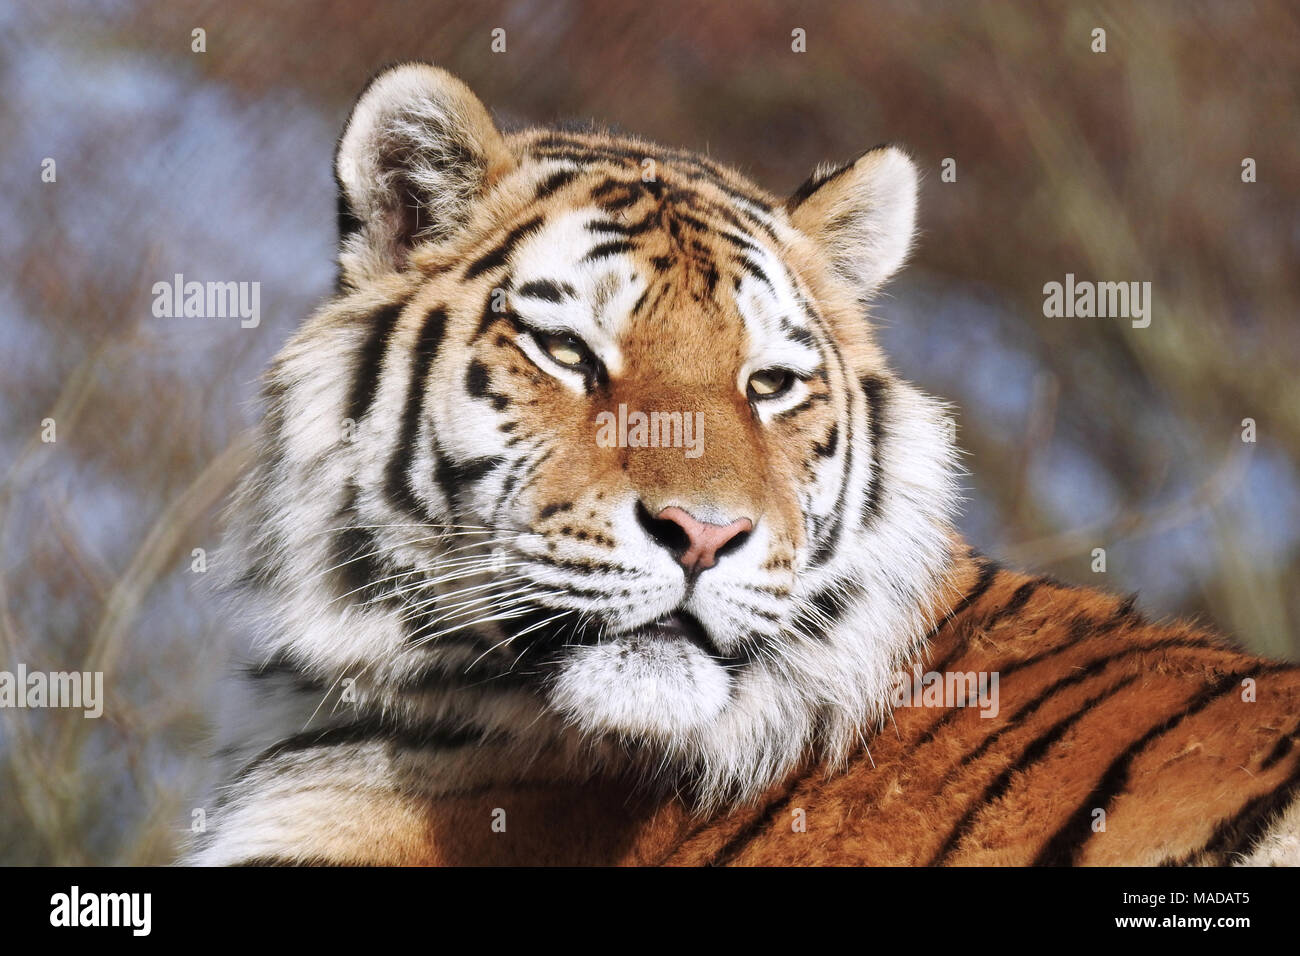 Tiger - Stock Image